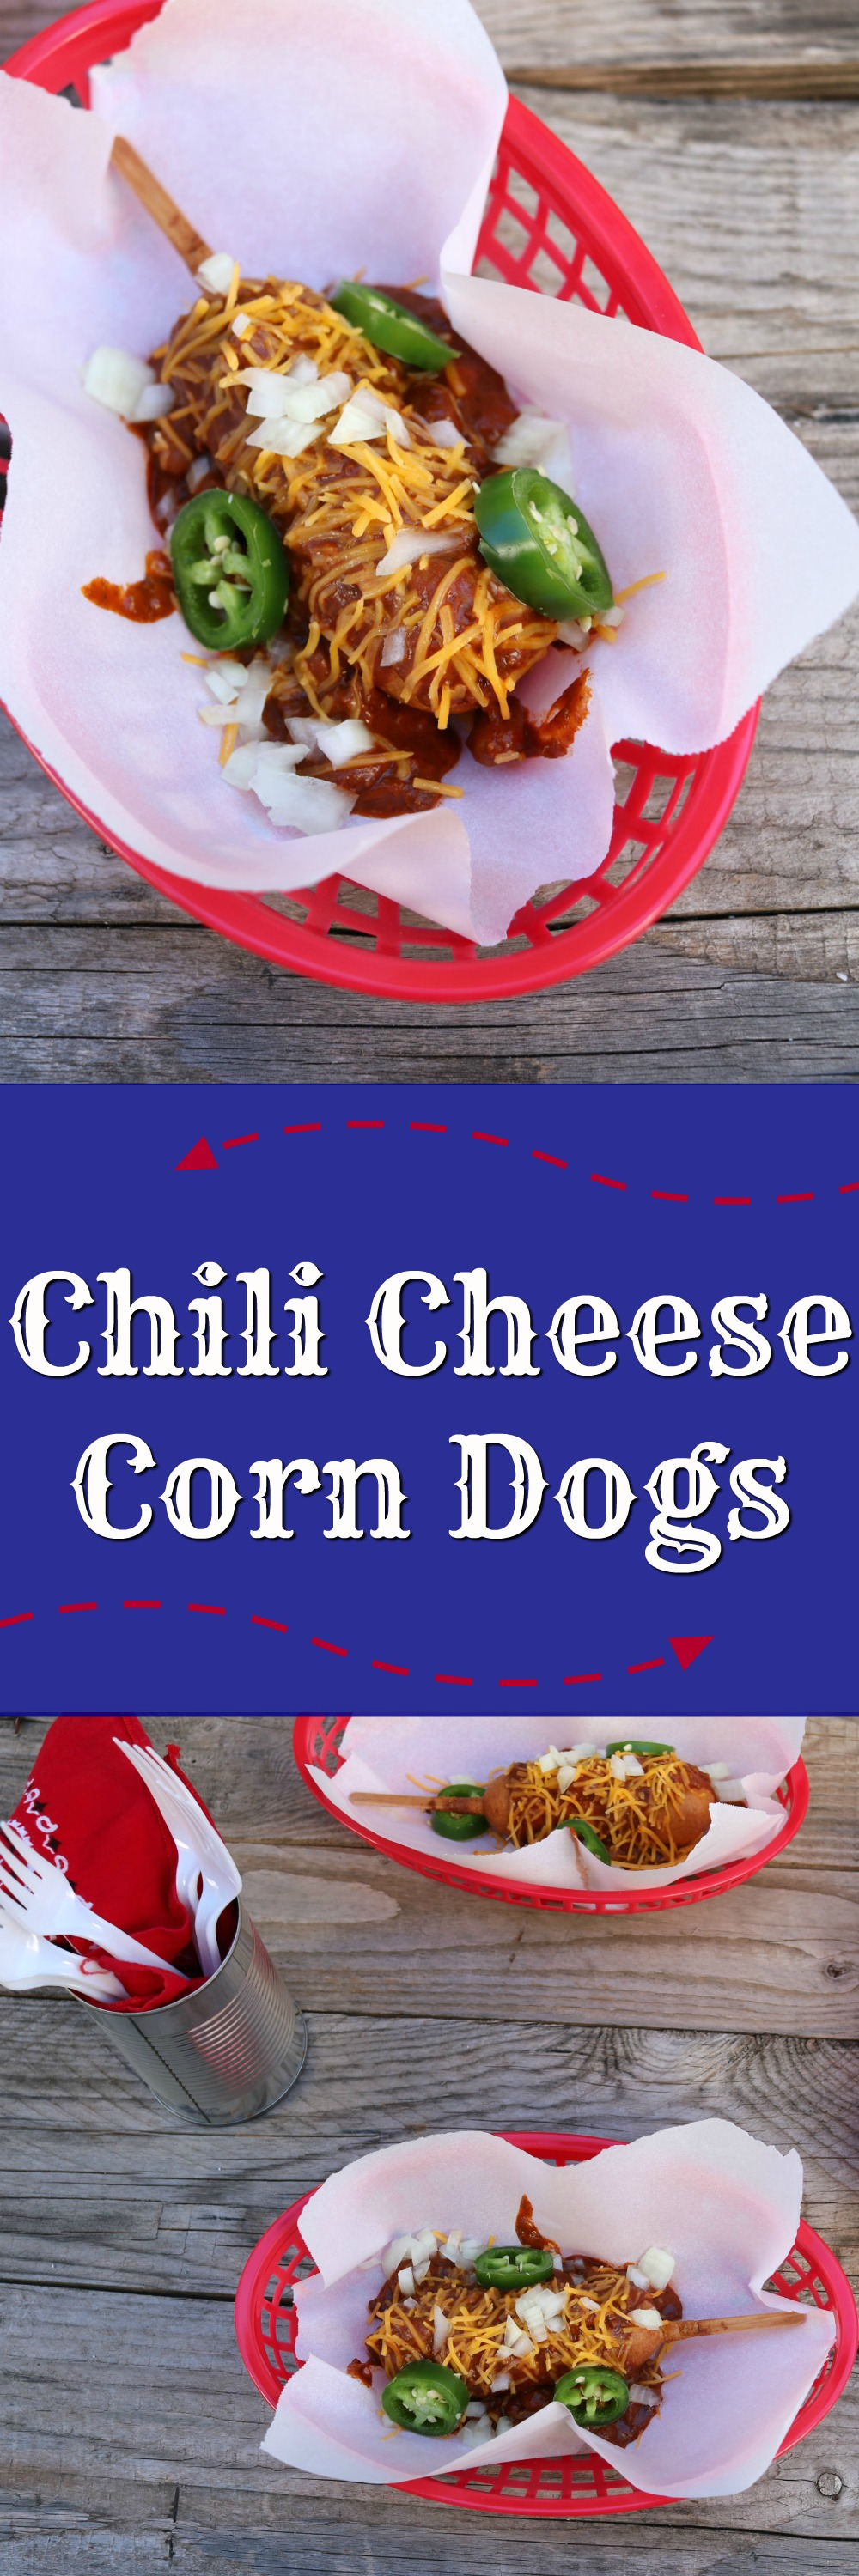 Chili Cheese Corn Dogs | SensiblySara.com